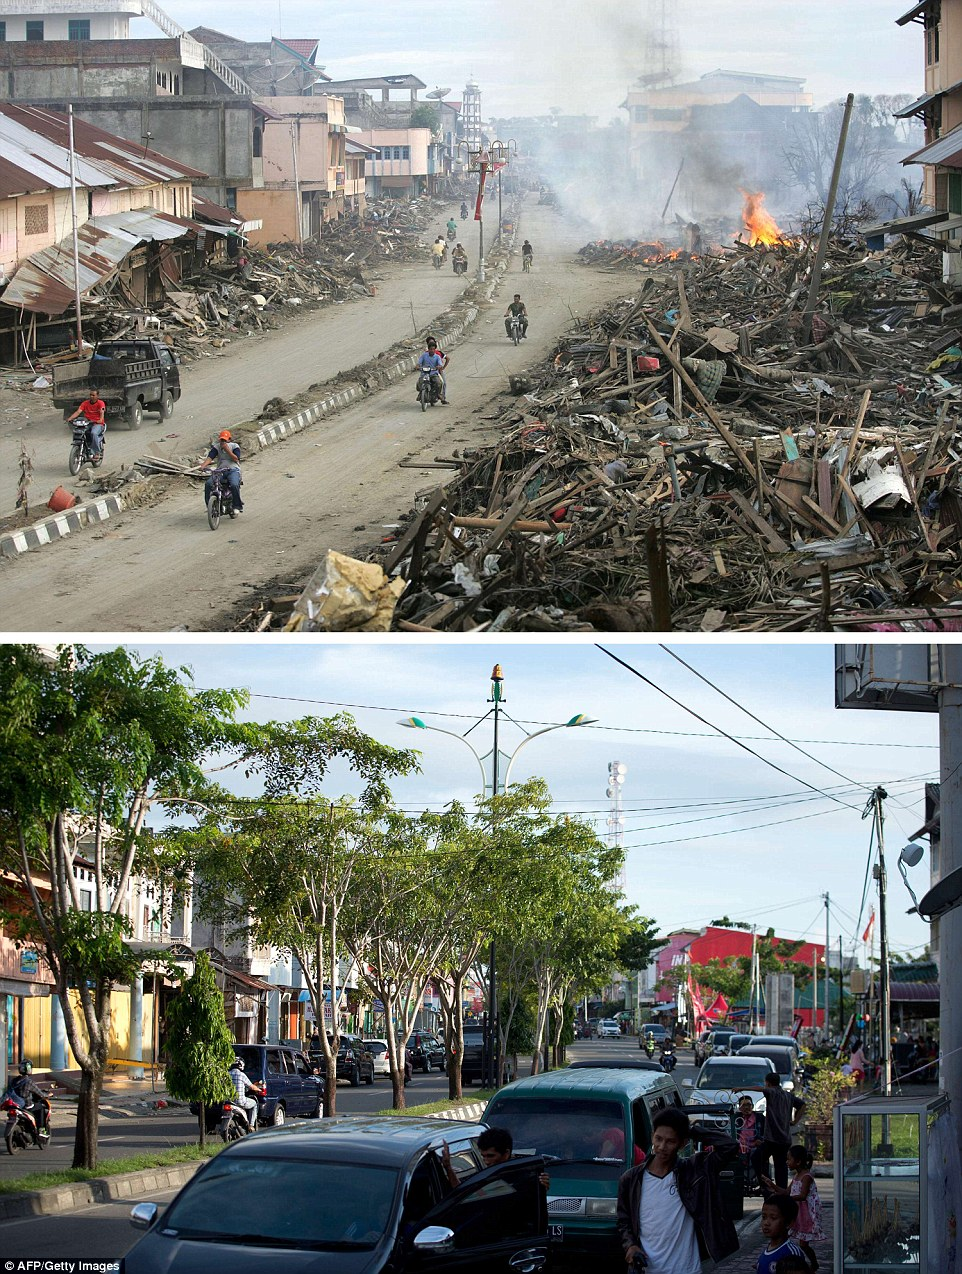 The first photograph was taken on January 9, 2005, just over a week after the tsunami, showing a of a street which had been cleared, but still had huge piles of debris on either side, in Meulaboh in Aceh, and the same location photographed on November 29 this year